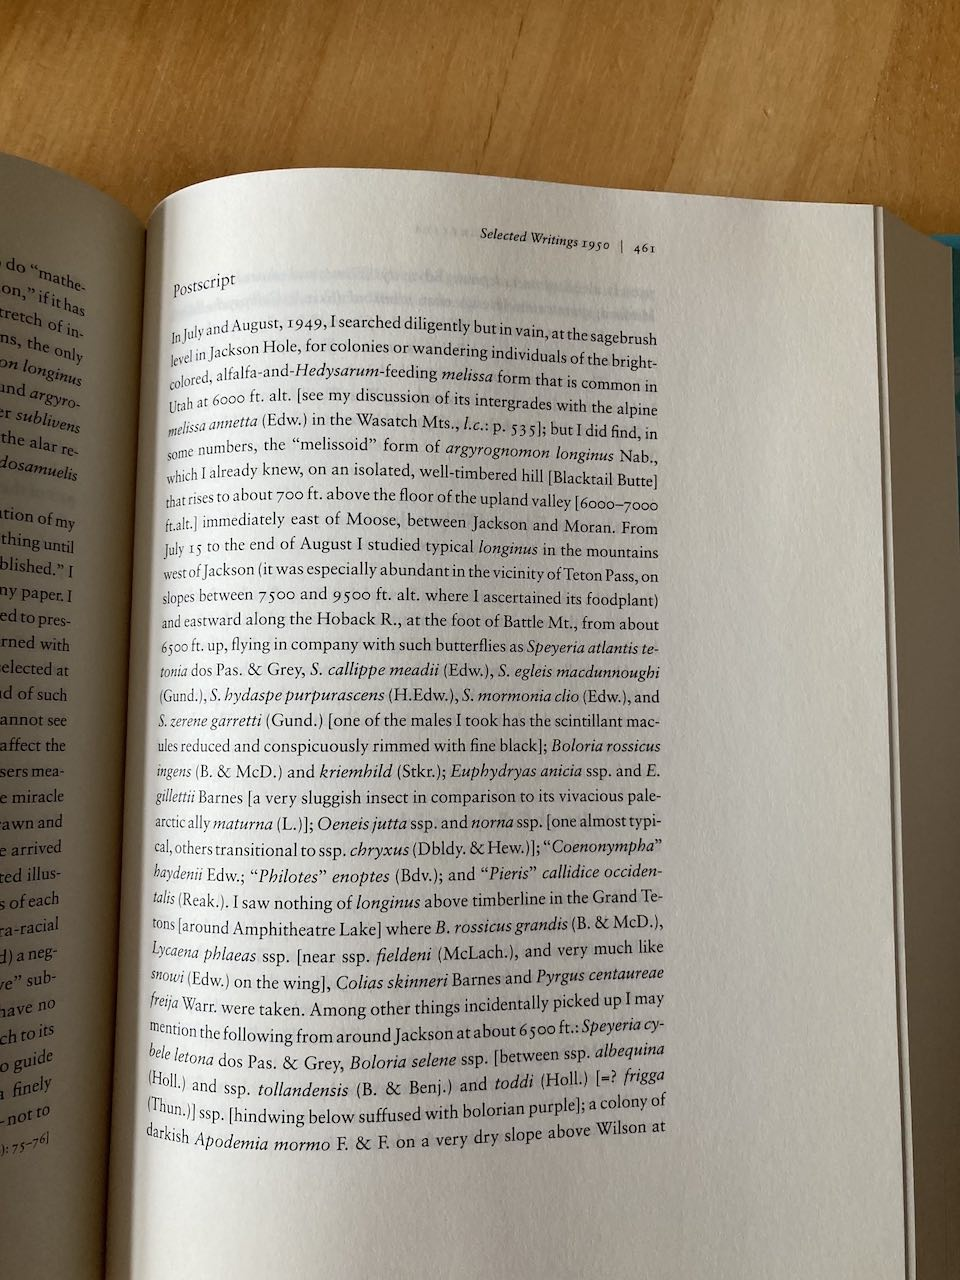 A photo of a book page and the section title in the top right corner.